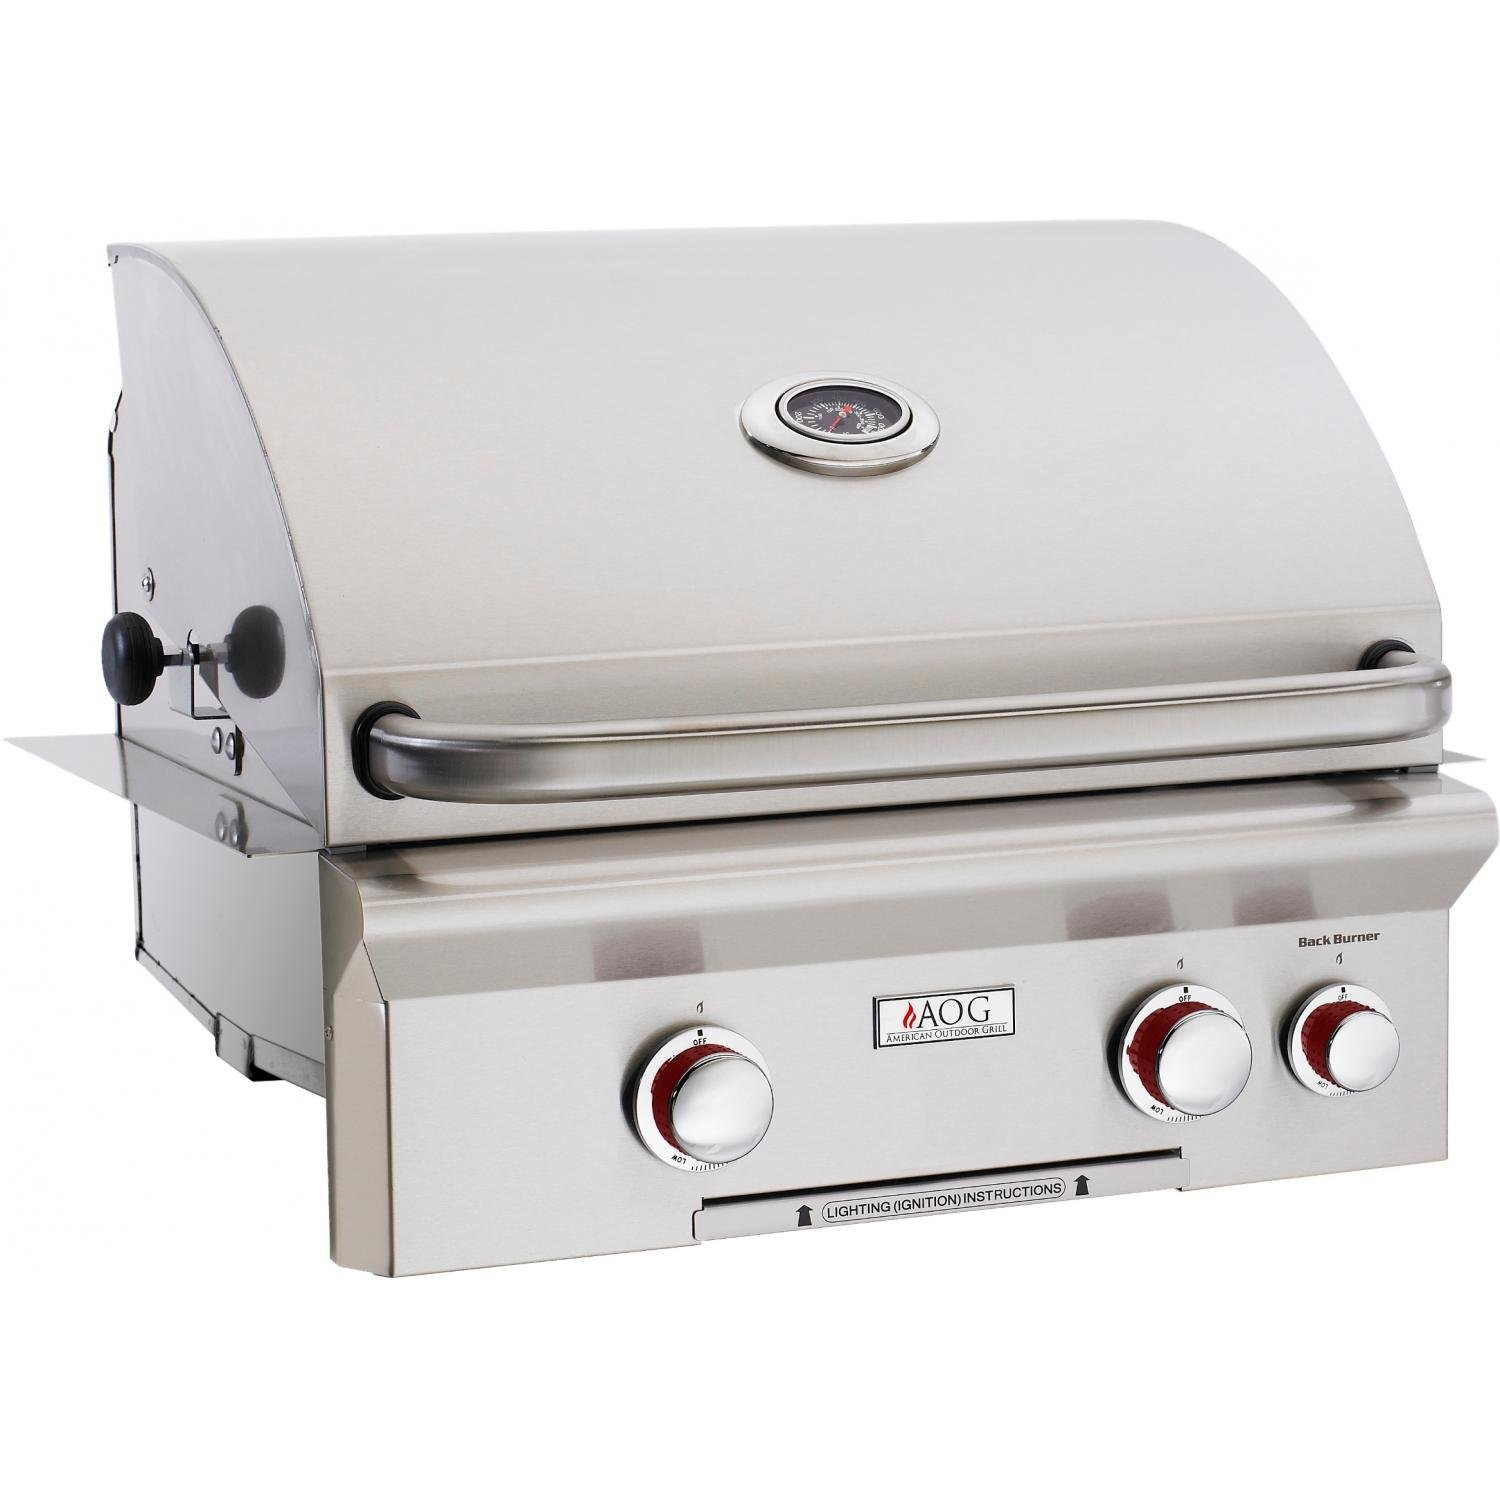 American Outdoor Grill 24 Inch Built-In Gas Grill - 42k BTU w/ Rotisserie